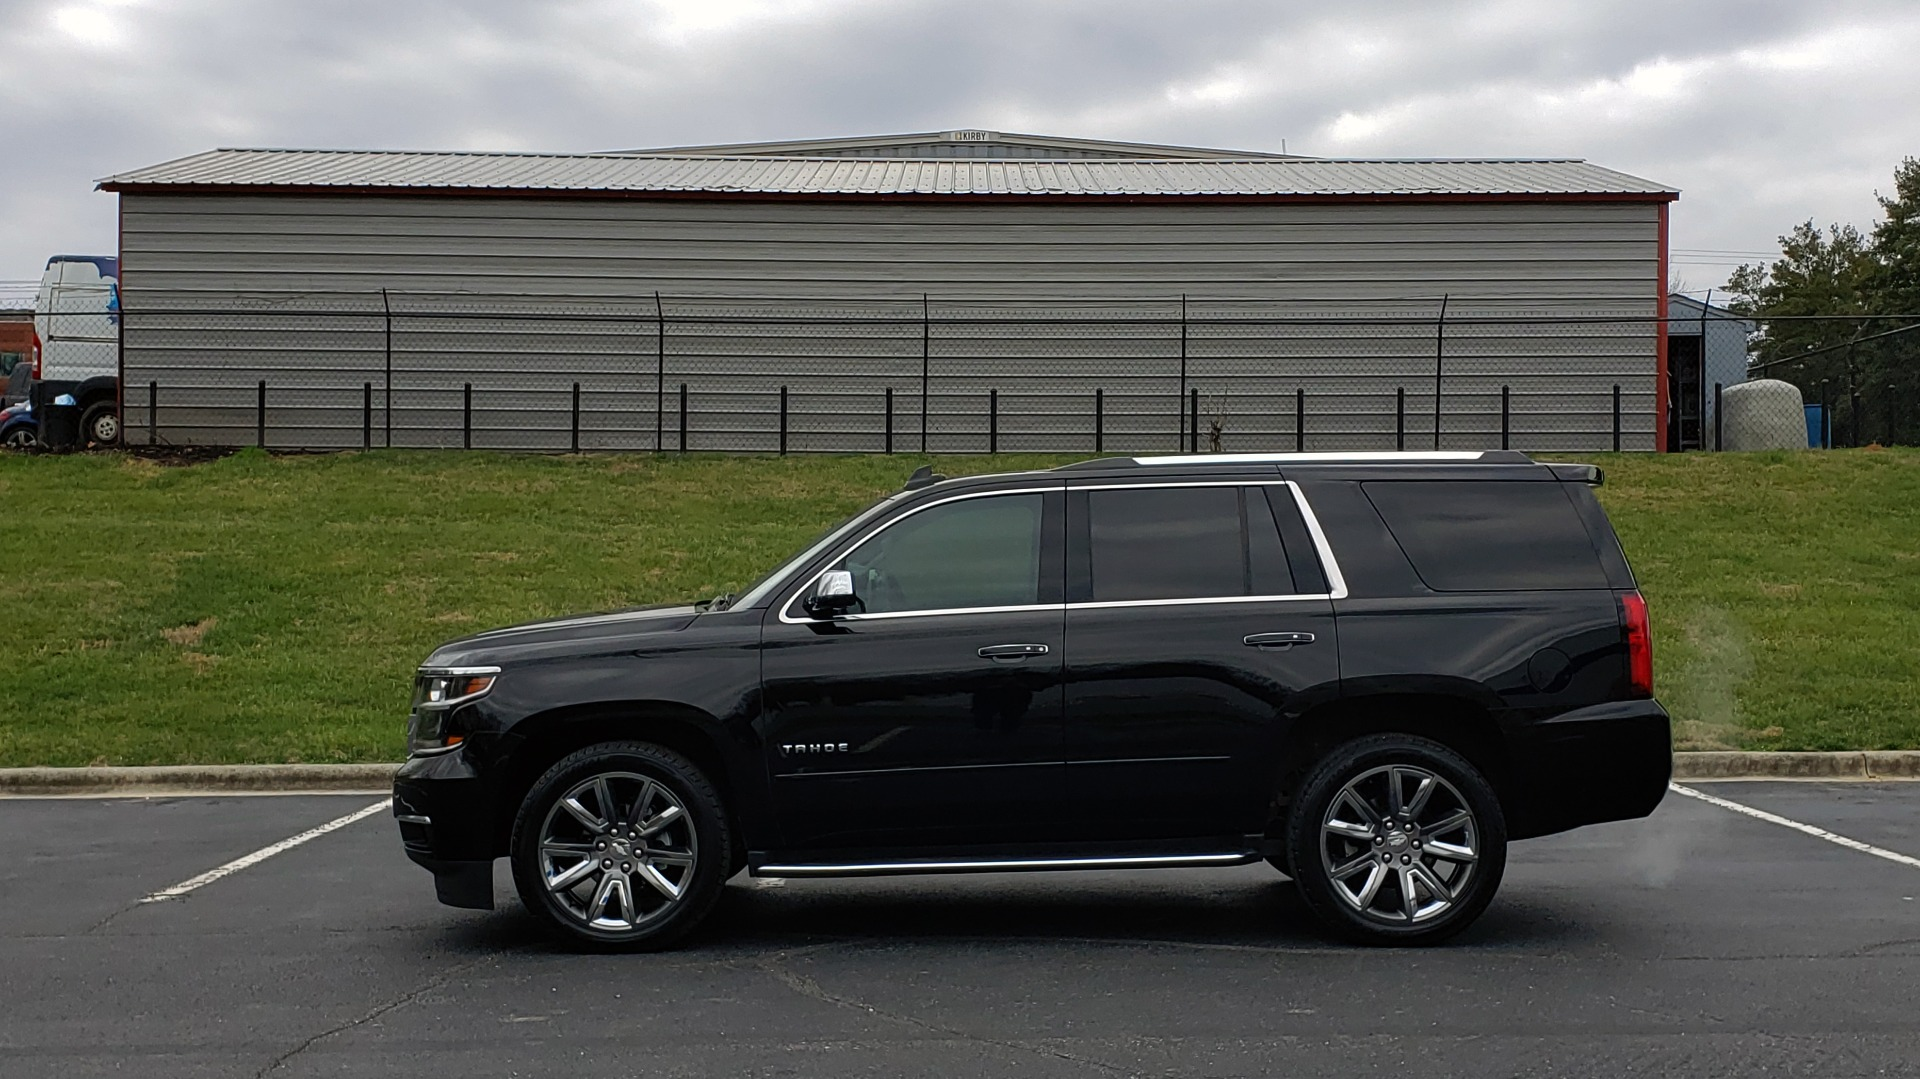 Used 2017 Chevrolet TAHOE PREMIER 4WD / NAV / SNRF / ENTERT / REARVIEW / 3-ROW for sale Sold at Formula Imports in Charlotte NC 28227 2